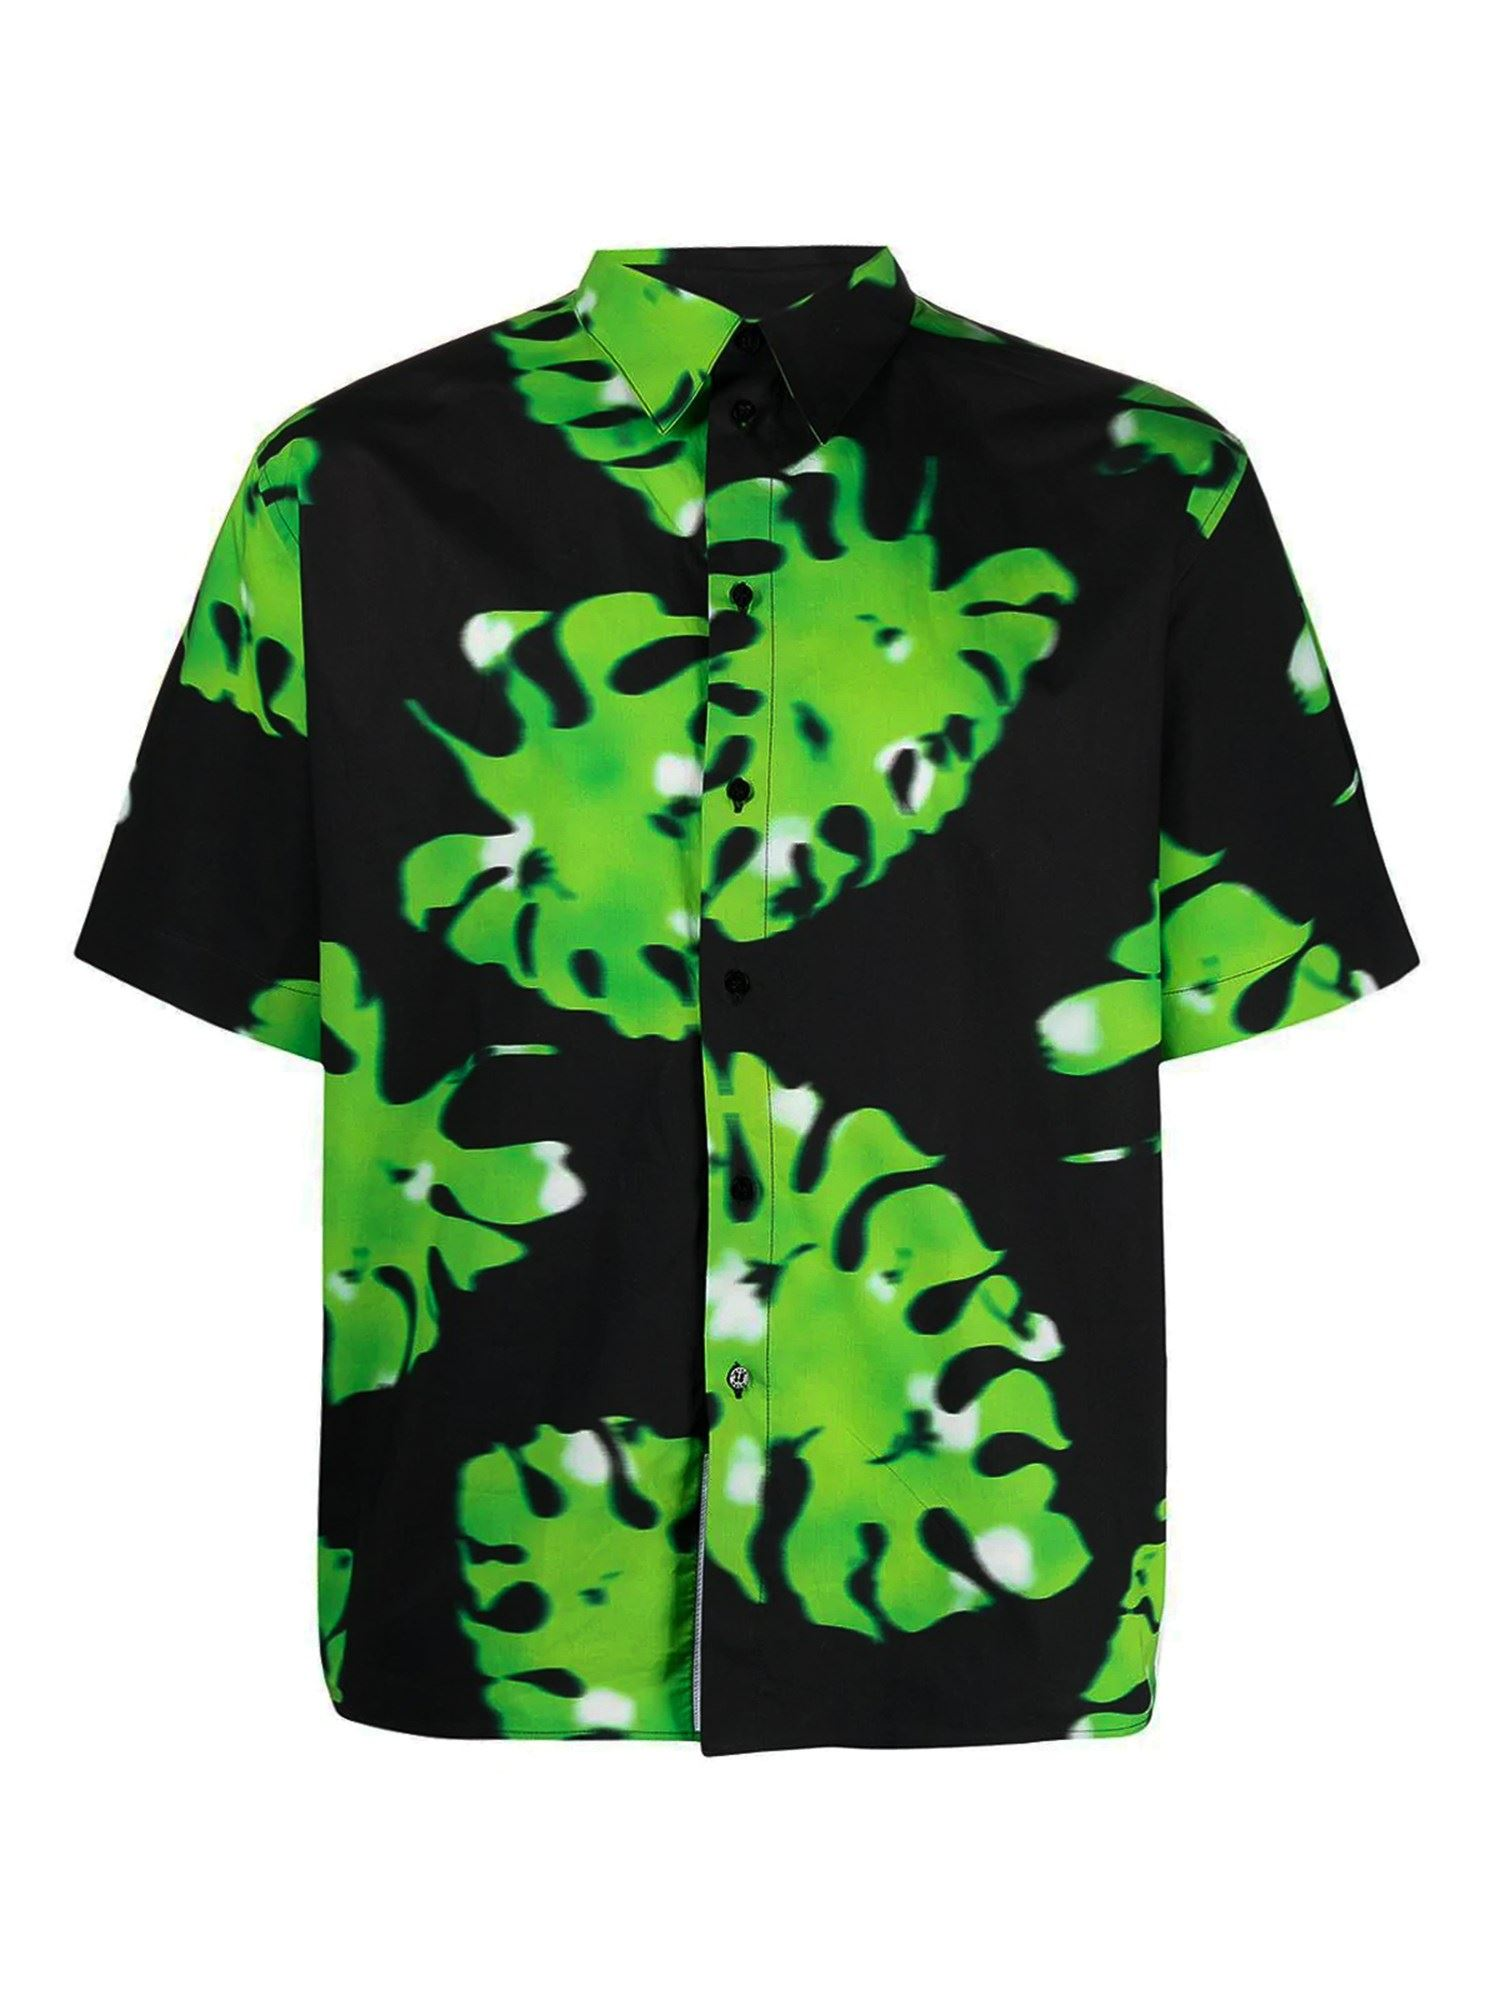 Msgm FLORAL PRINT SHIRT IN BLACK AND GREEN